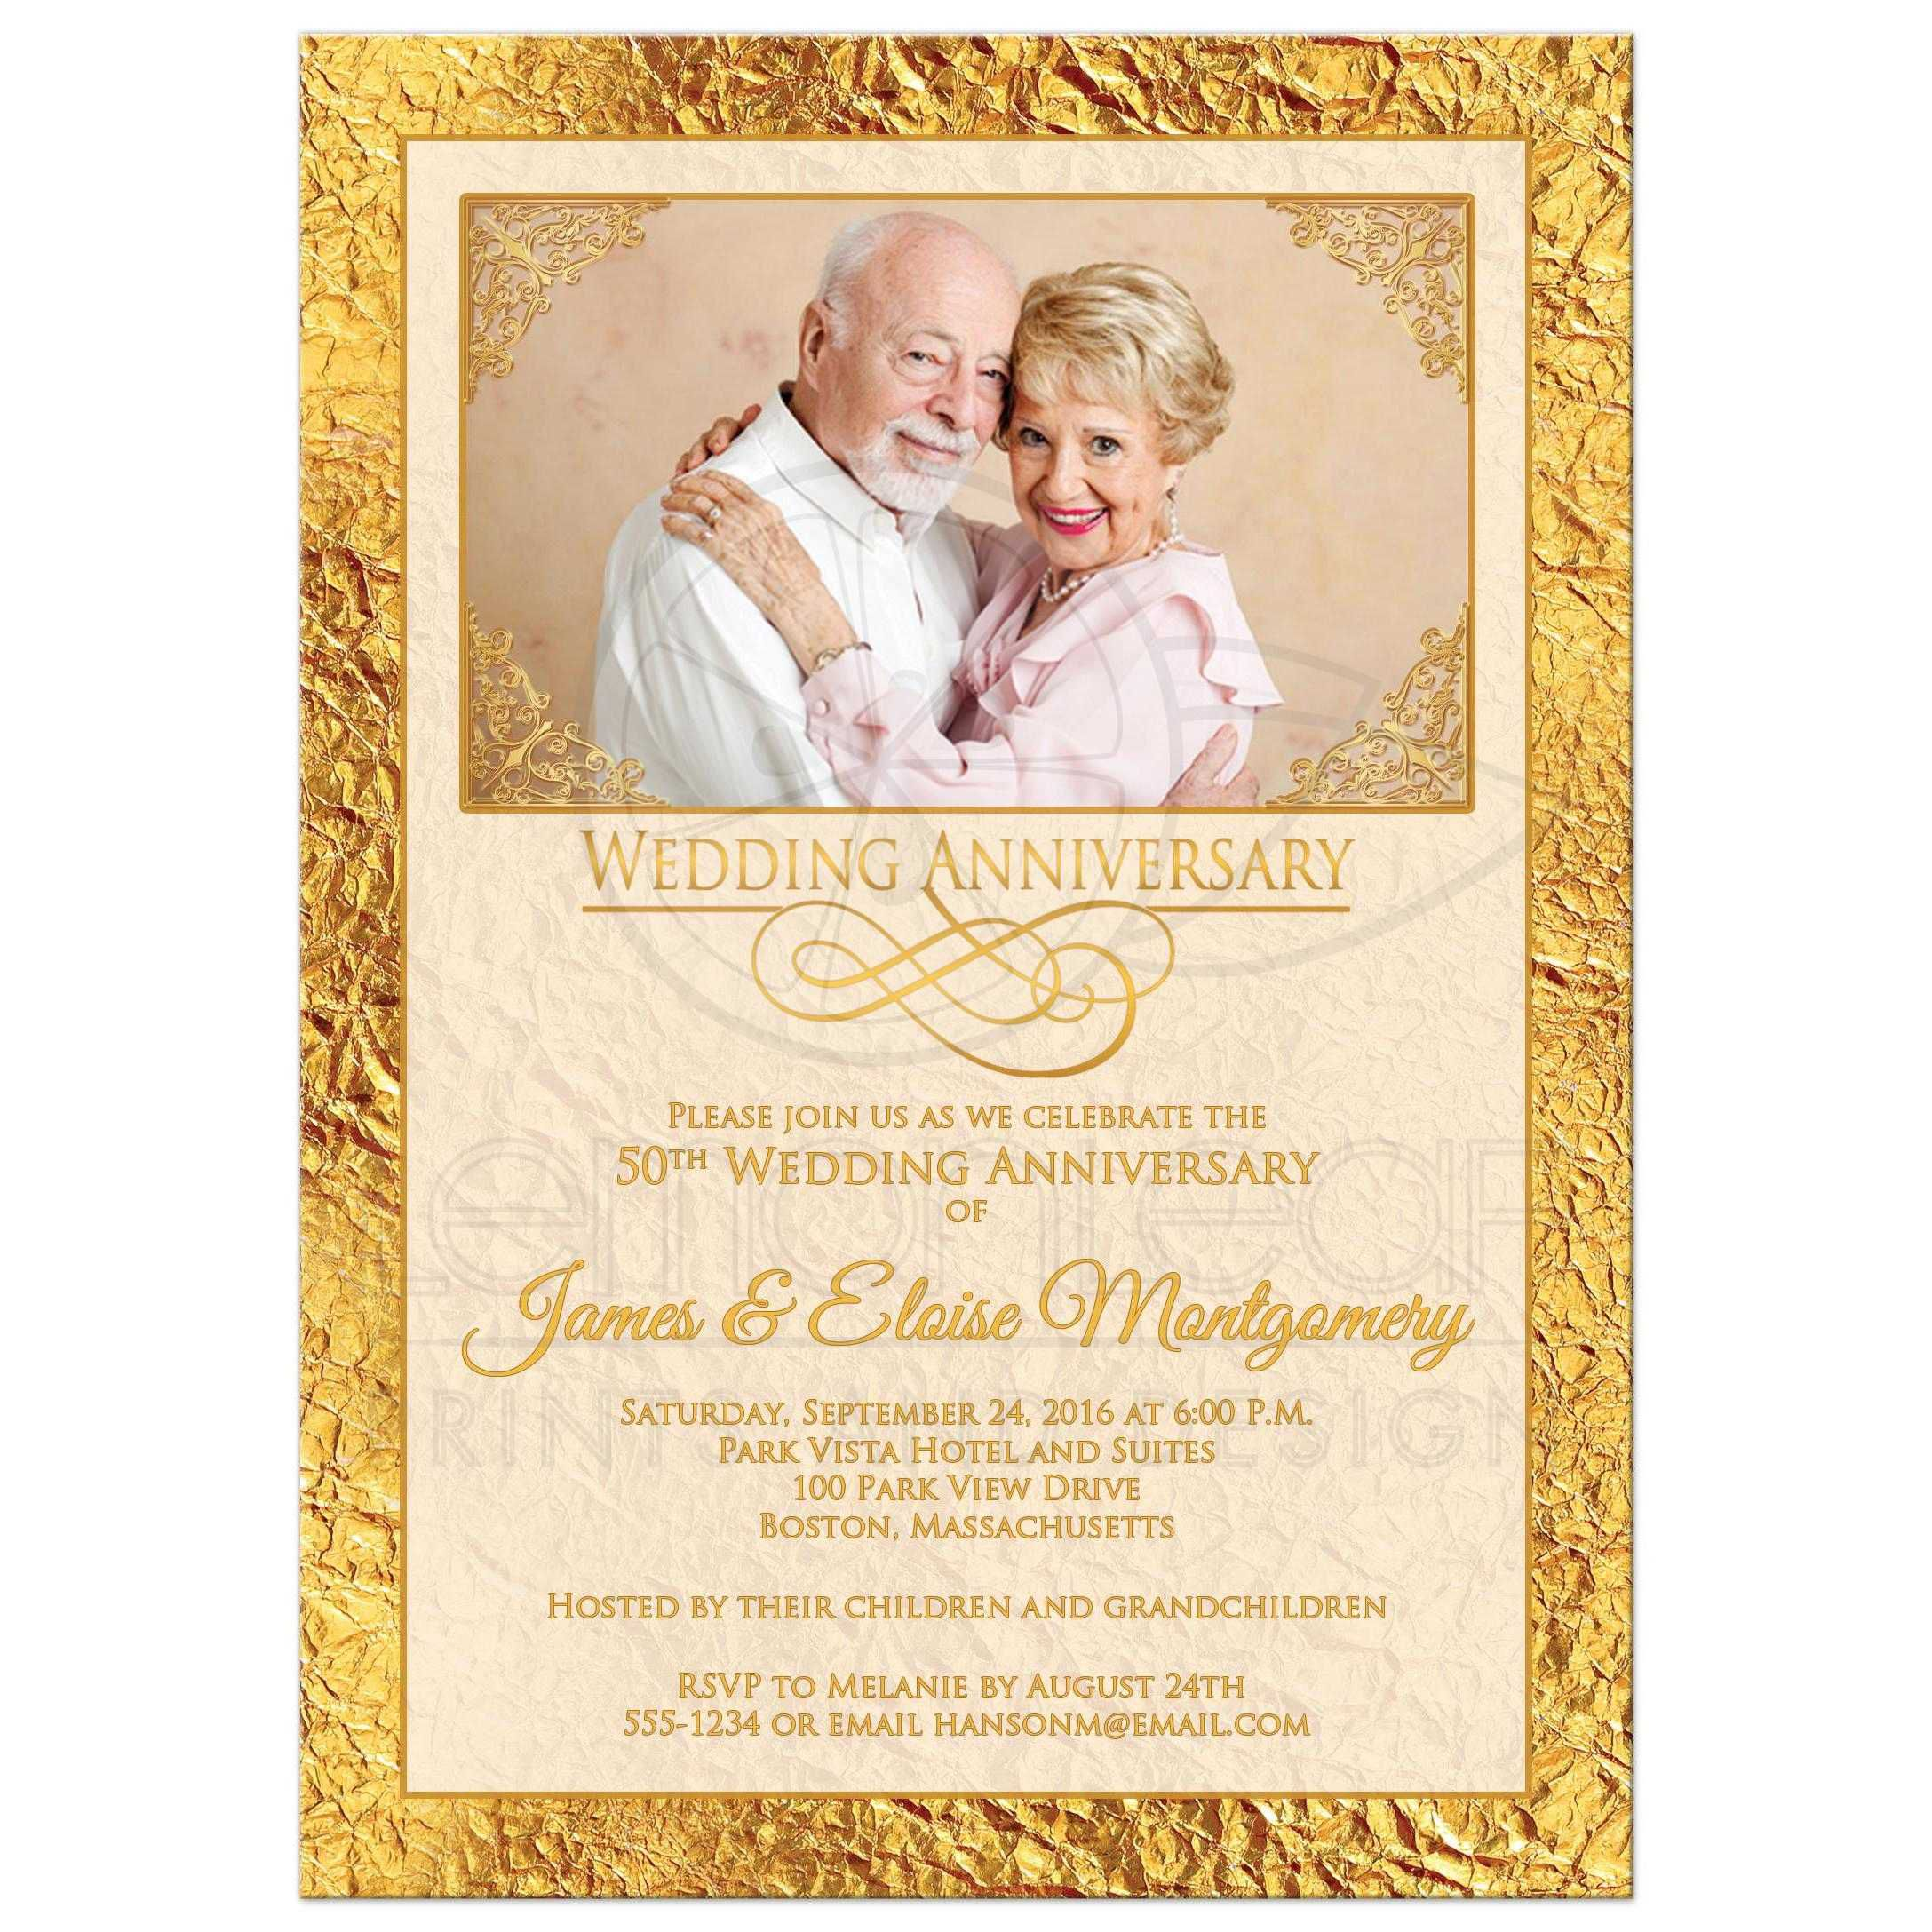 005 Awful 50th Wedding Anniversary Invitation Design High Definition  Designs Wording Sample Card Template Free DownloadFull